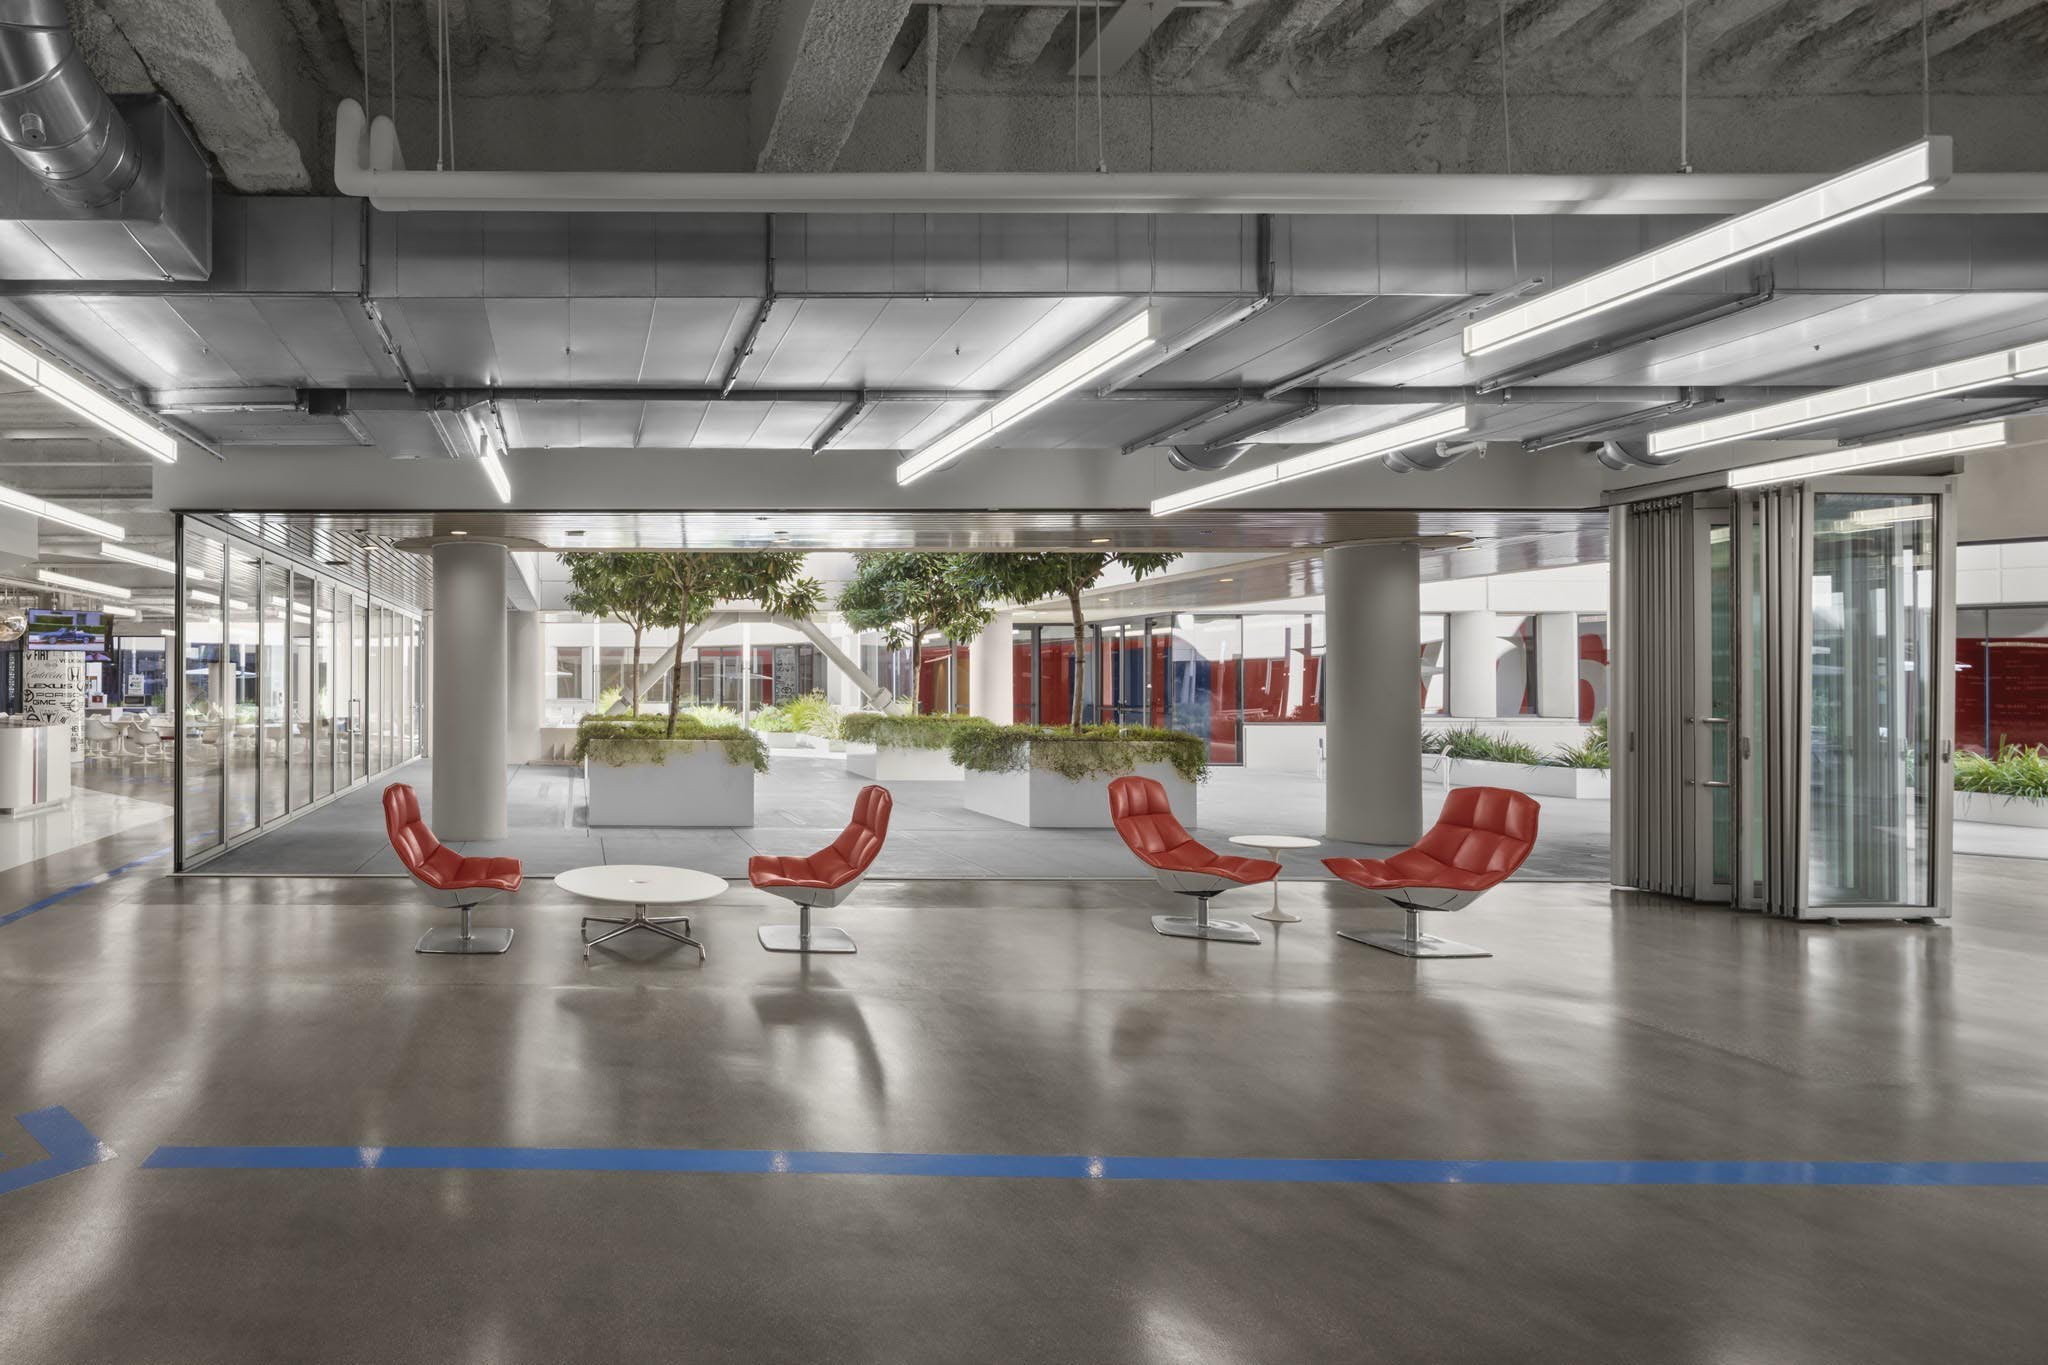 sliding commerical glass wall systems in office exterior for indoor/outdoor connection